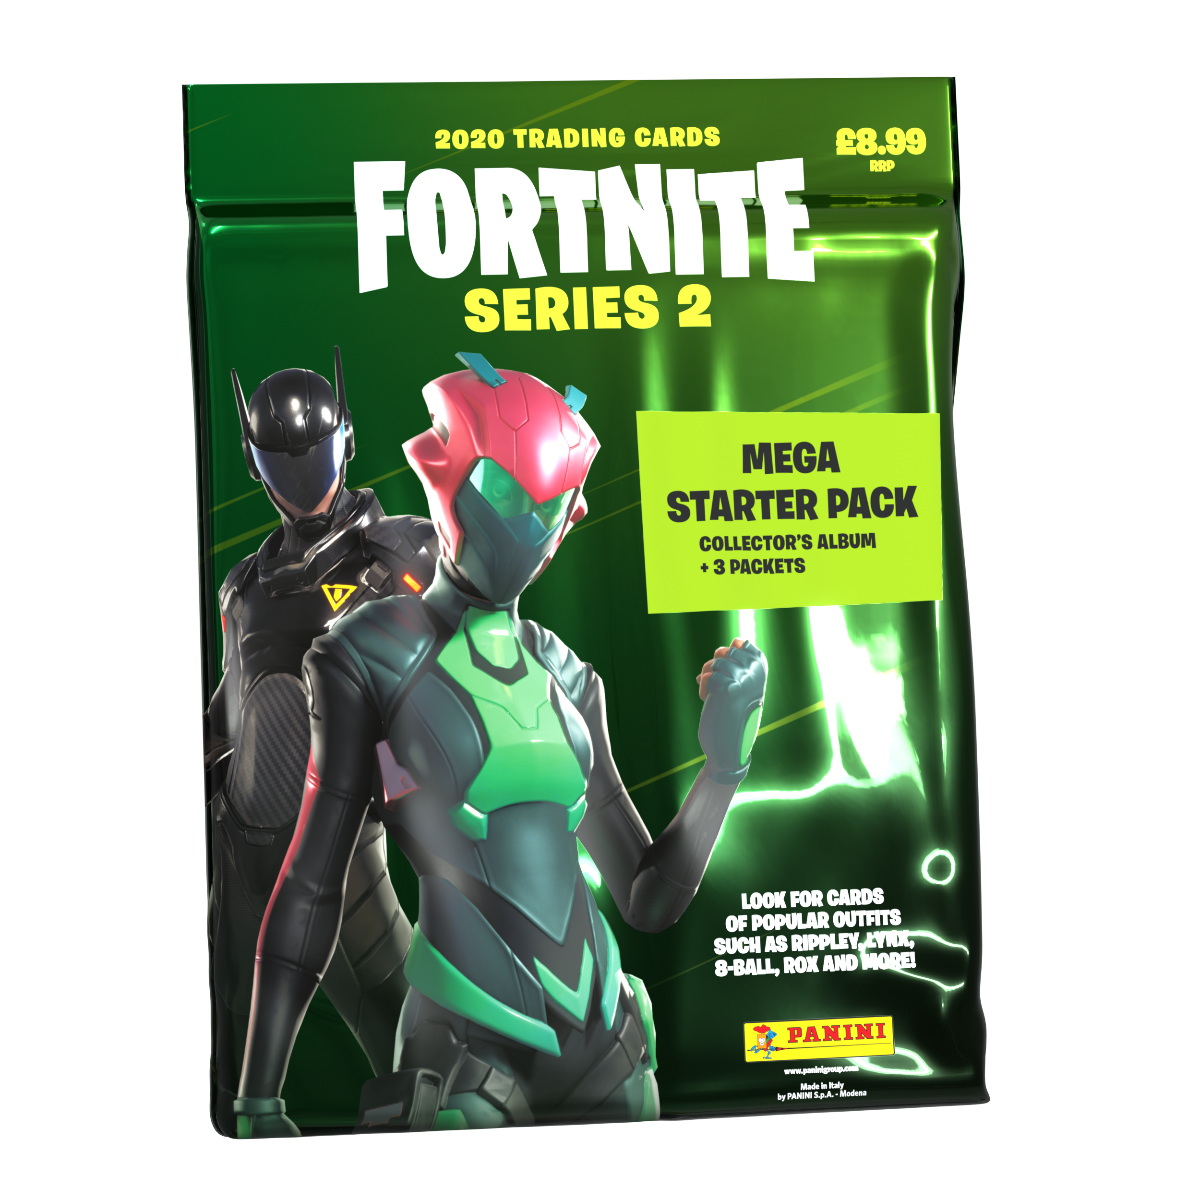 Fortnite Series 2 Trading Cards|Panini